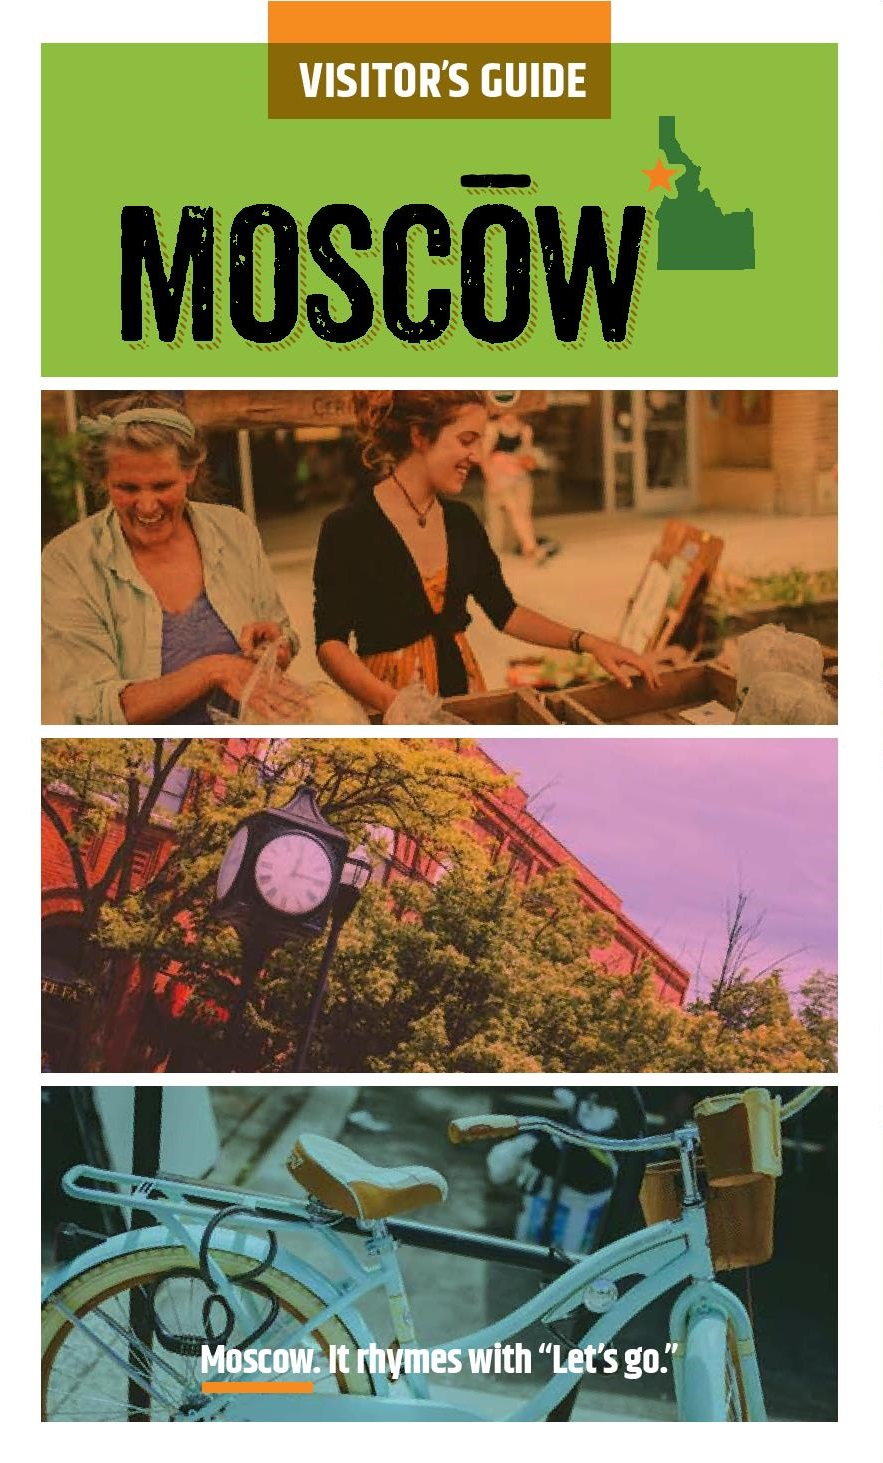 238_00816_Moscow_Visitors_Guide_Cover_newhighres-page-001.jpg